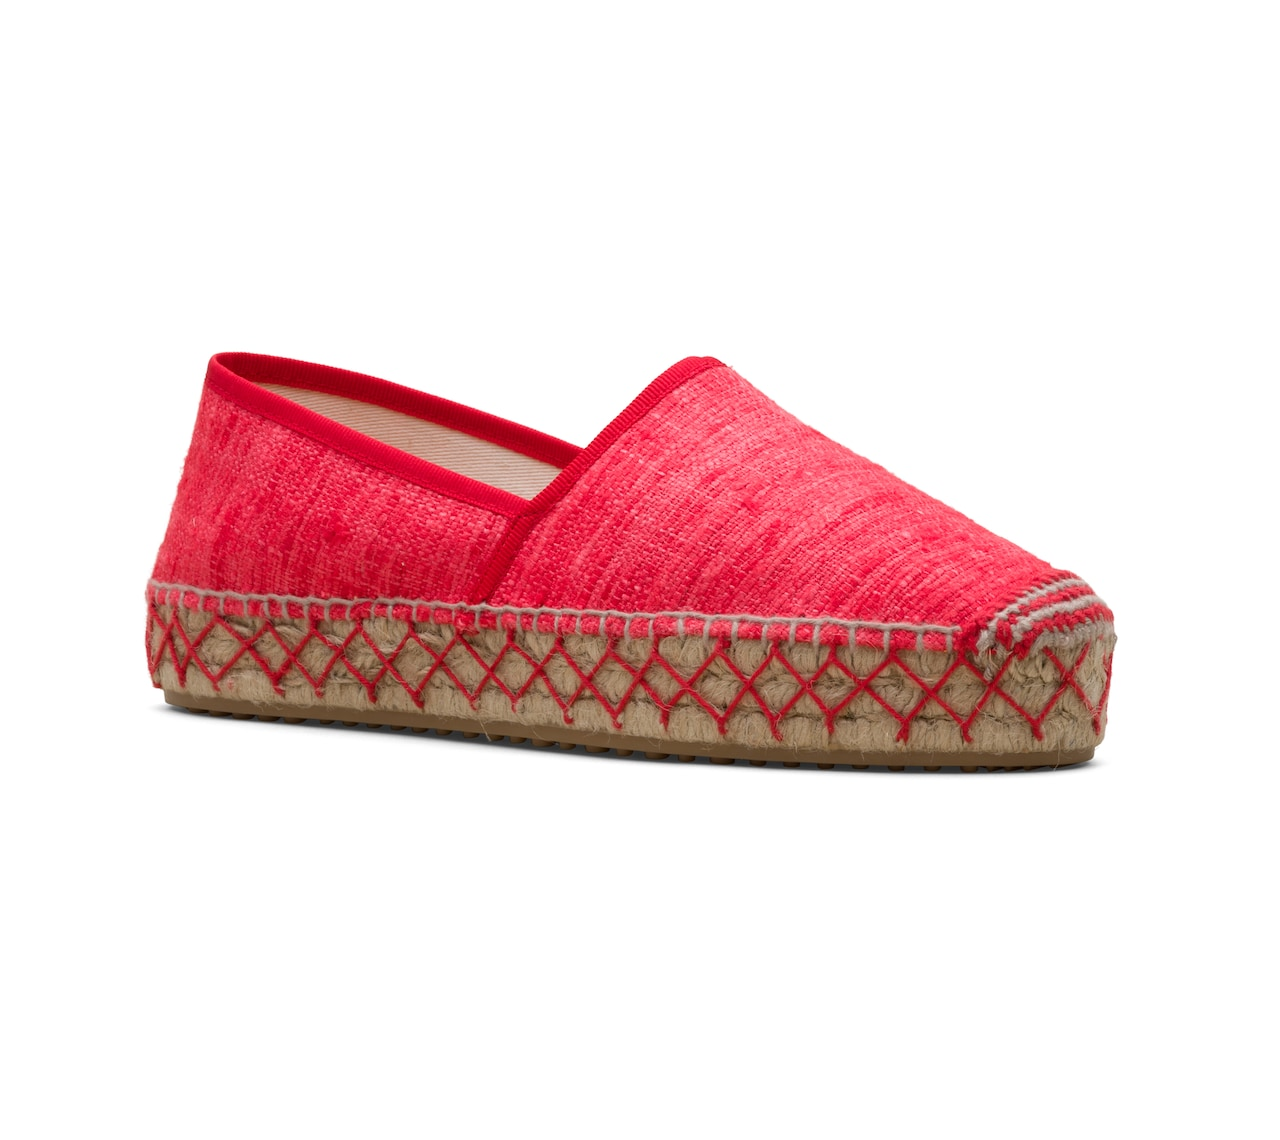 ESPADRILLAS IN UNLINED RAW SILK RED